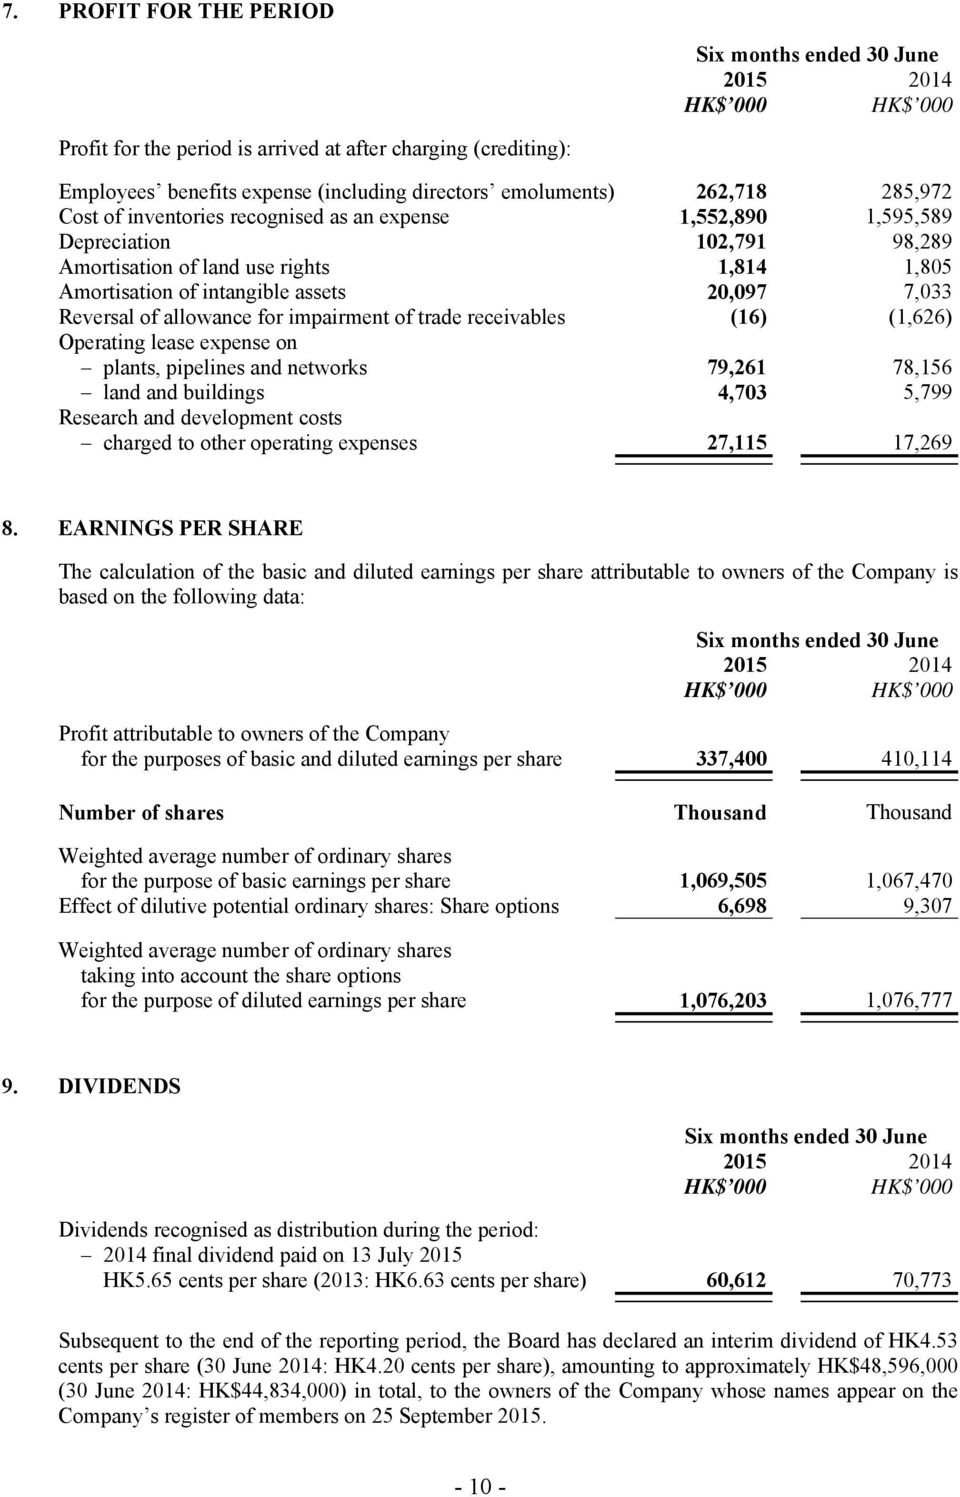 receivables (16) (1,626) Operating lease expense on plants, pipelines and networks 79,261 78,156 land and buildings 4,703 5,799 Research and development costs charged to other operating expenses